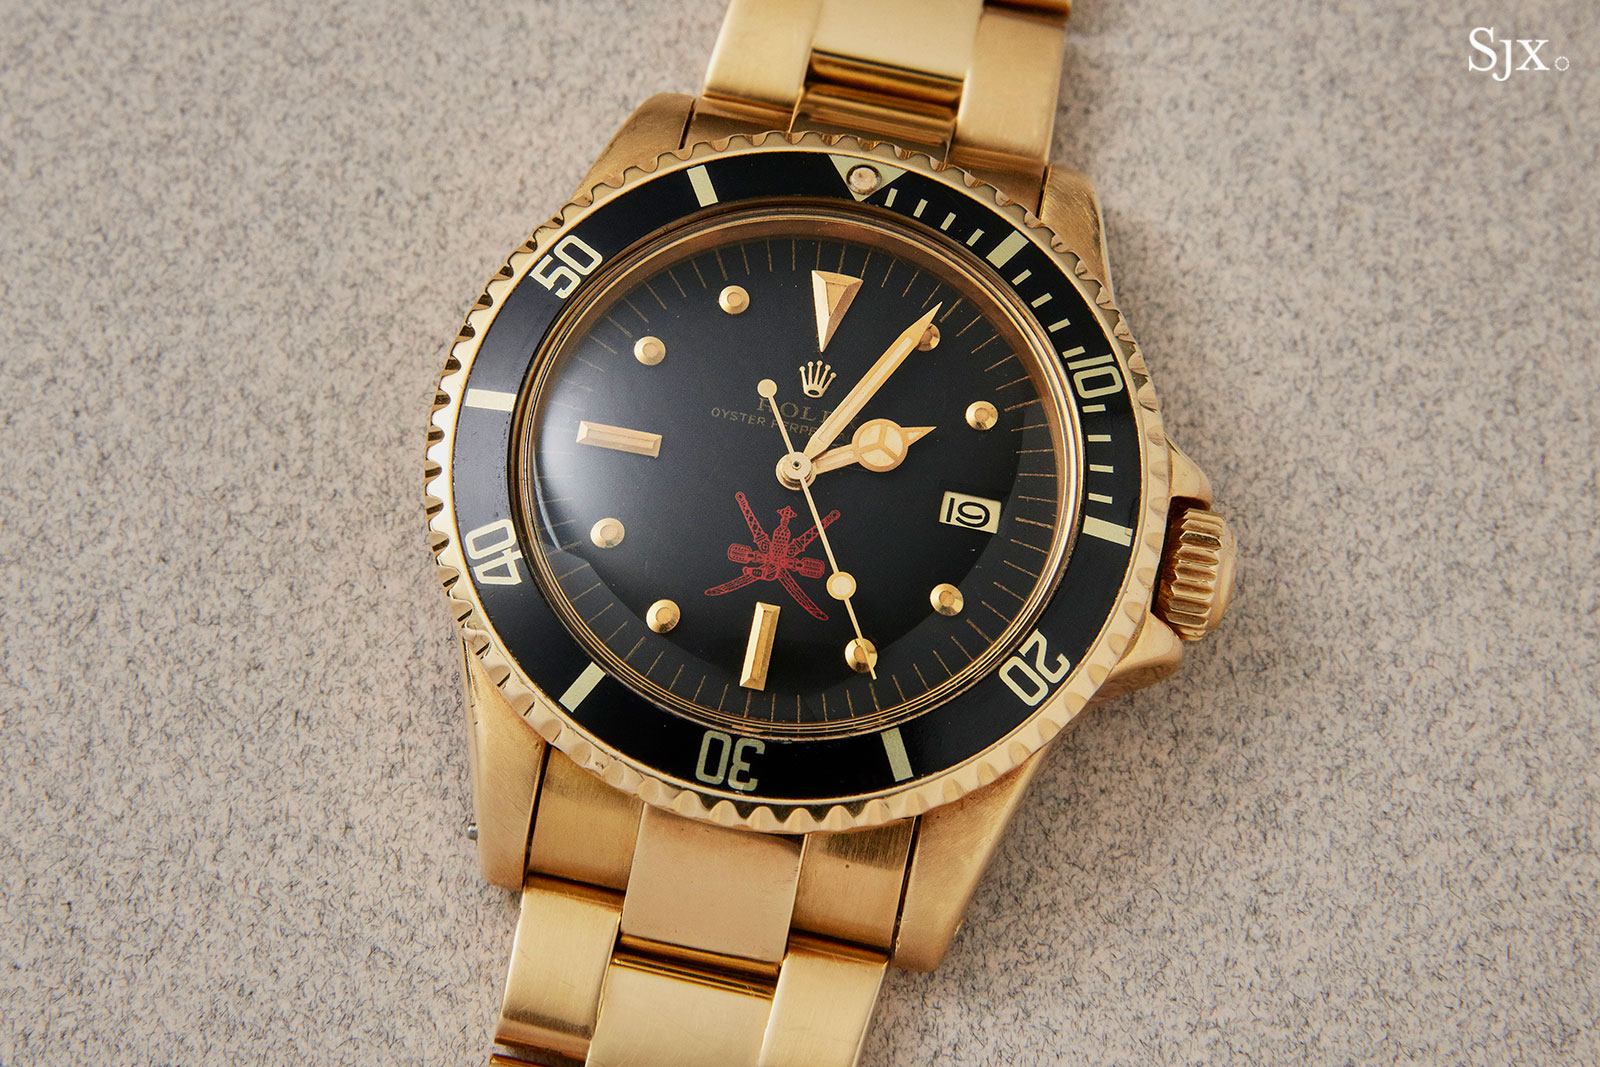 Rolex Submariner gold 1680 red khanjar 2